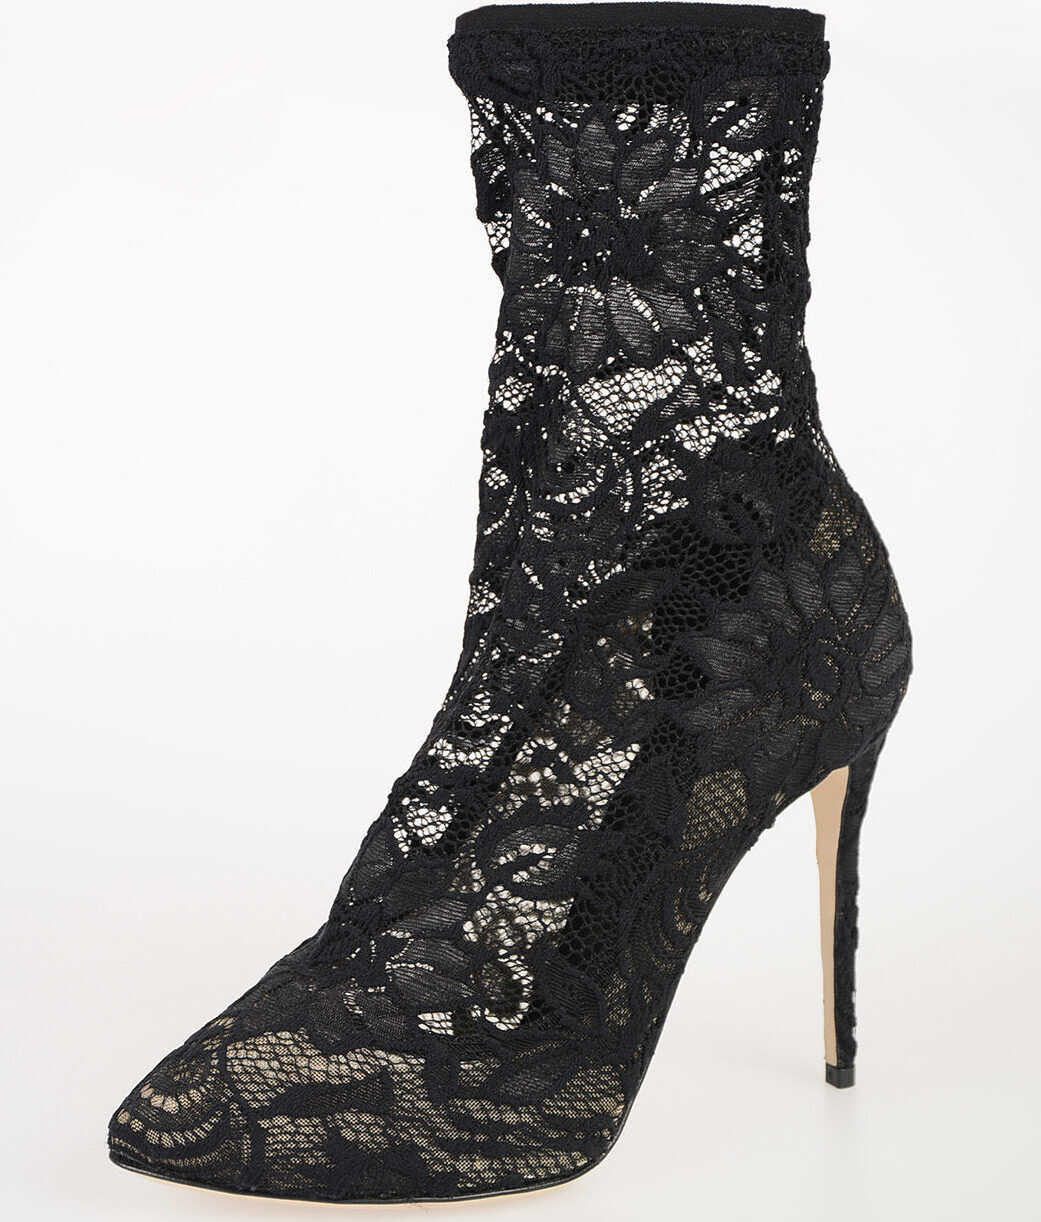 Dolce & Gabbana 11cm Laced Ankle Boots BLACK